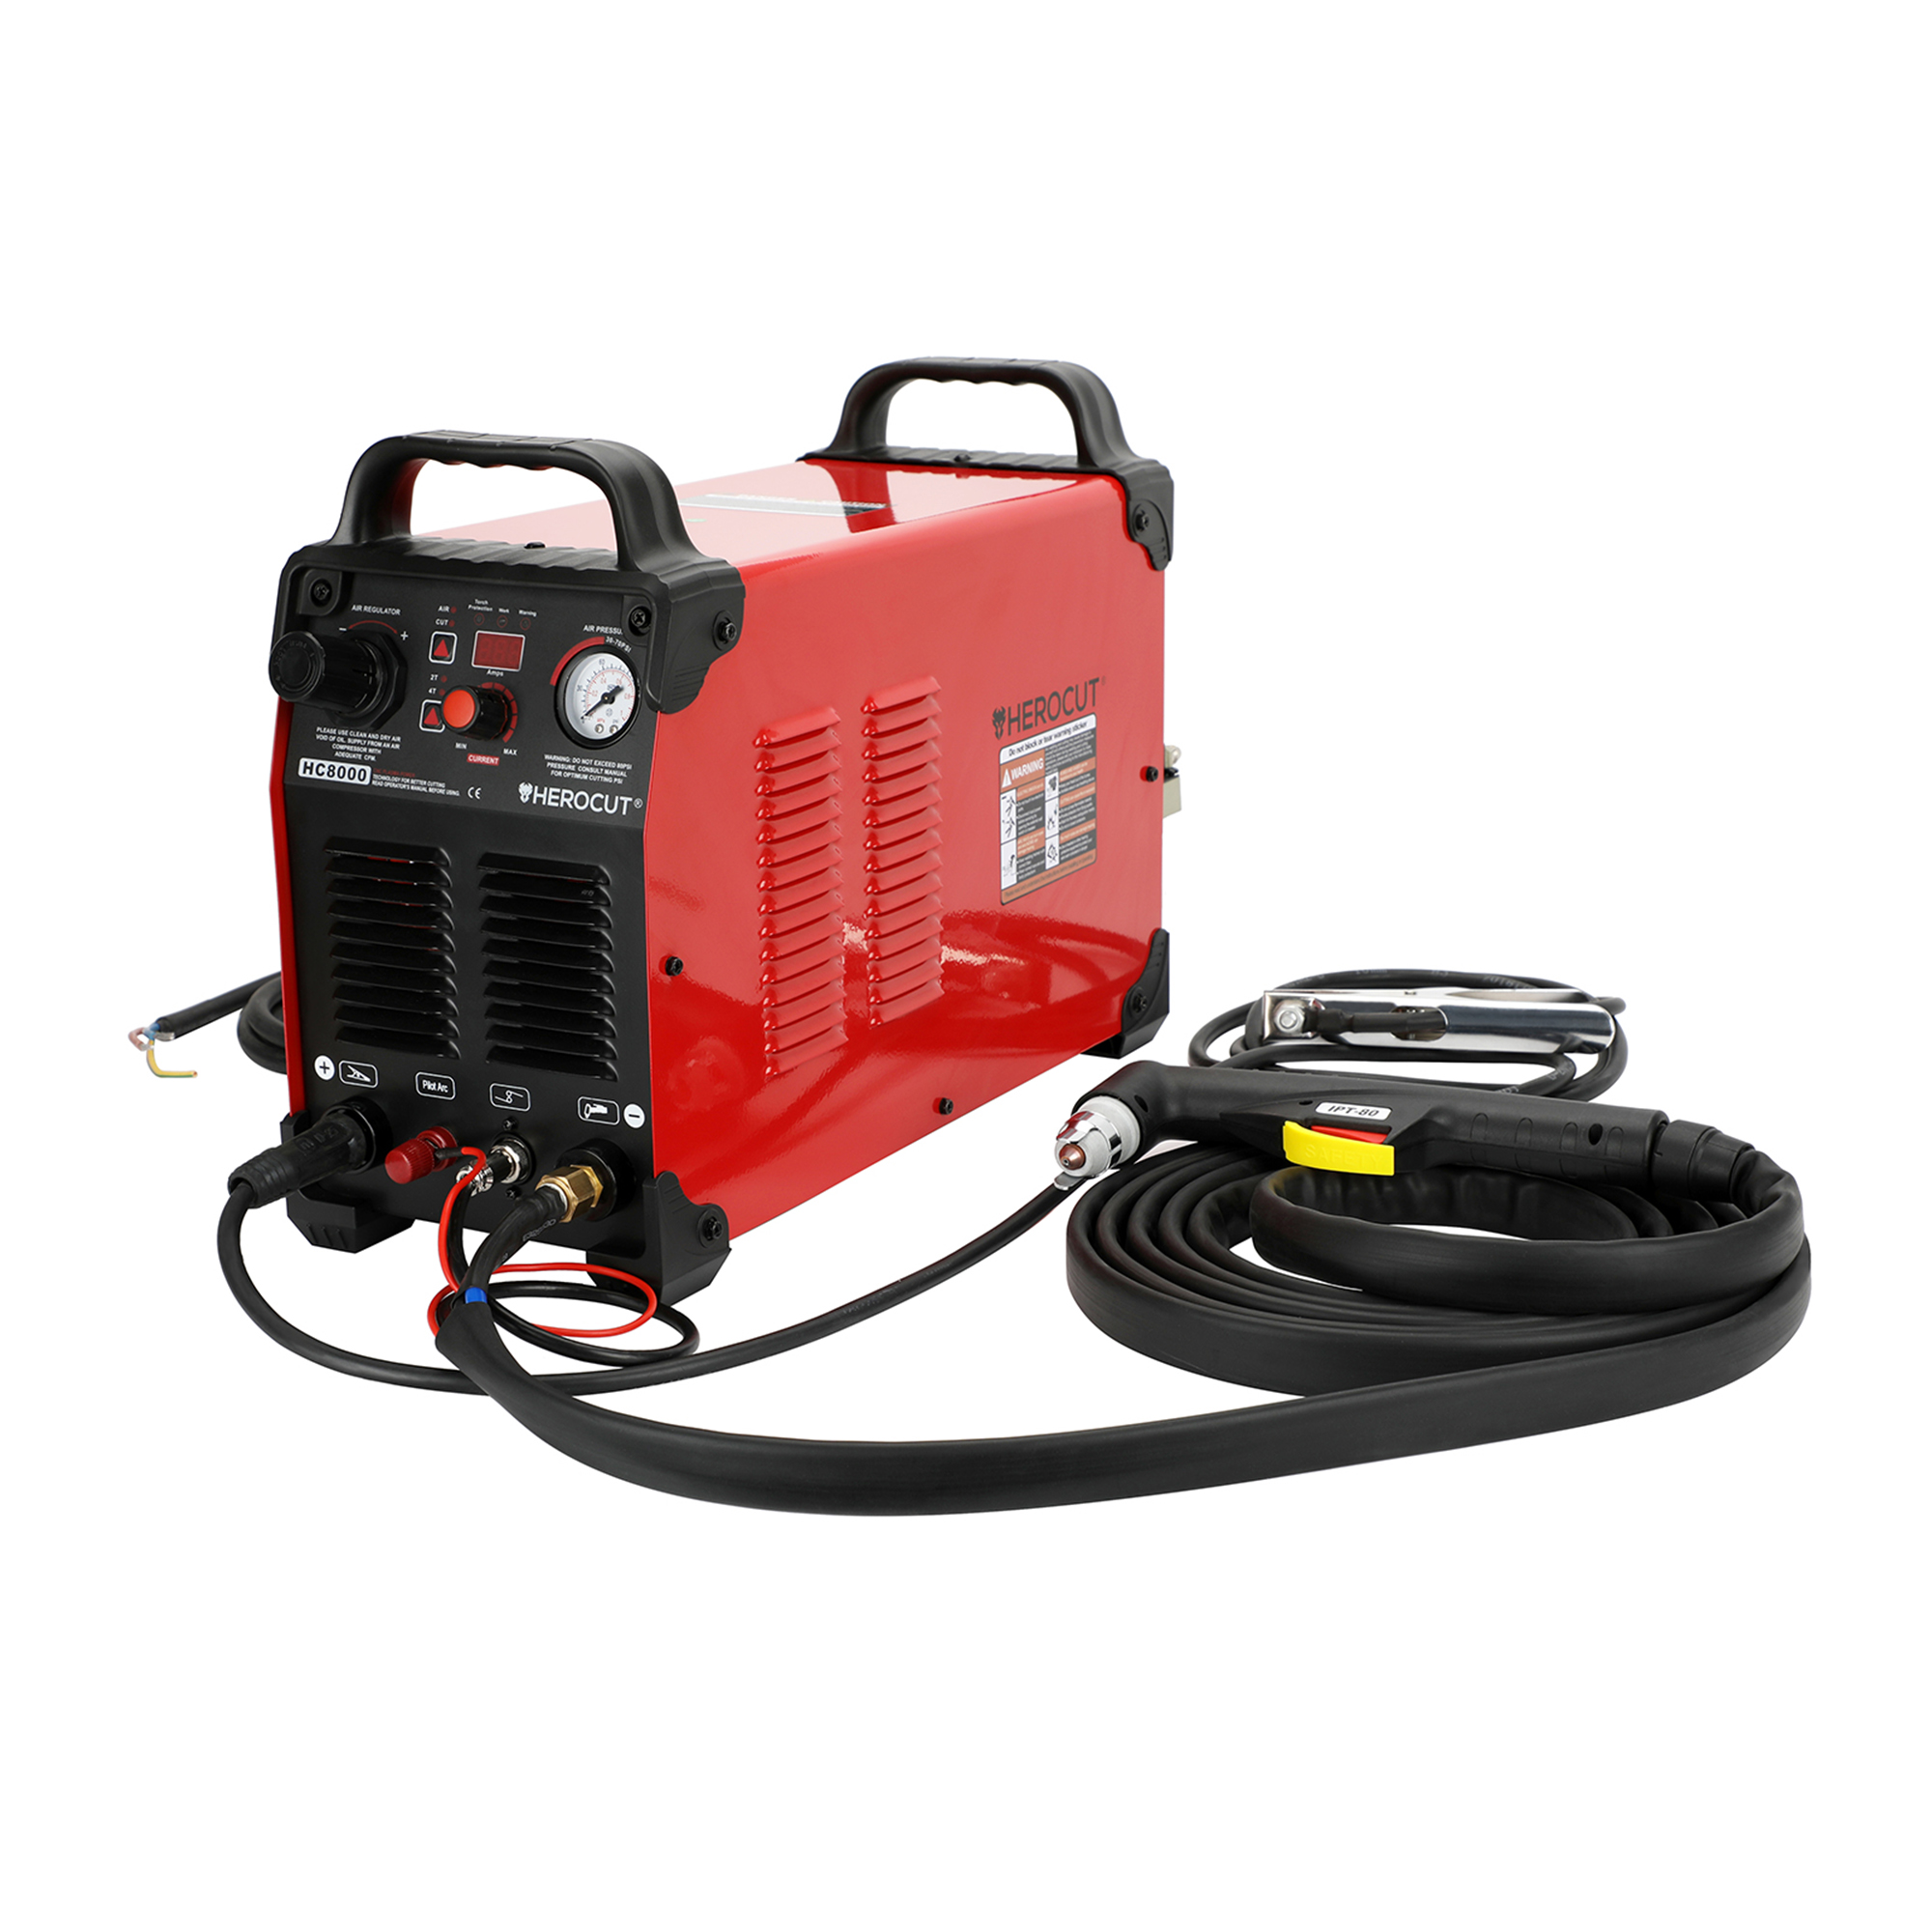 Herocut HC8000 220V CNC Plasma Cutter Non-HF Pilot Arc Plasma Cutting Machine, Cutting 25mm Clean Cut